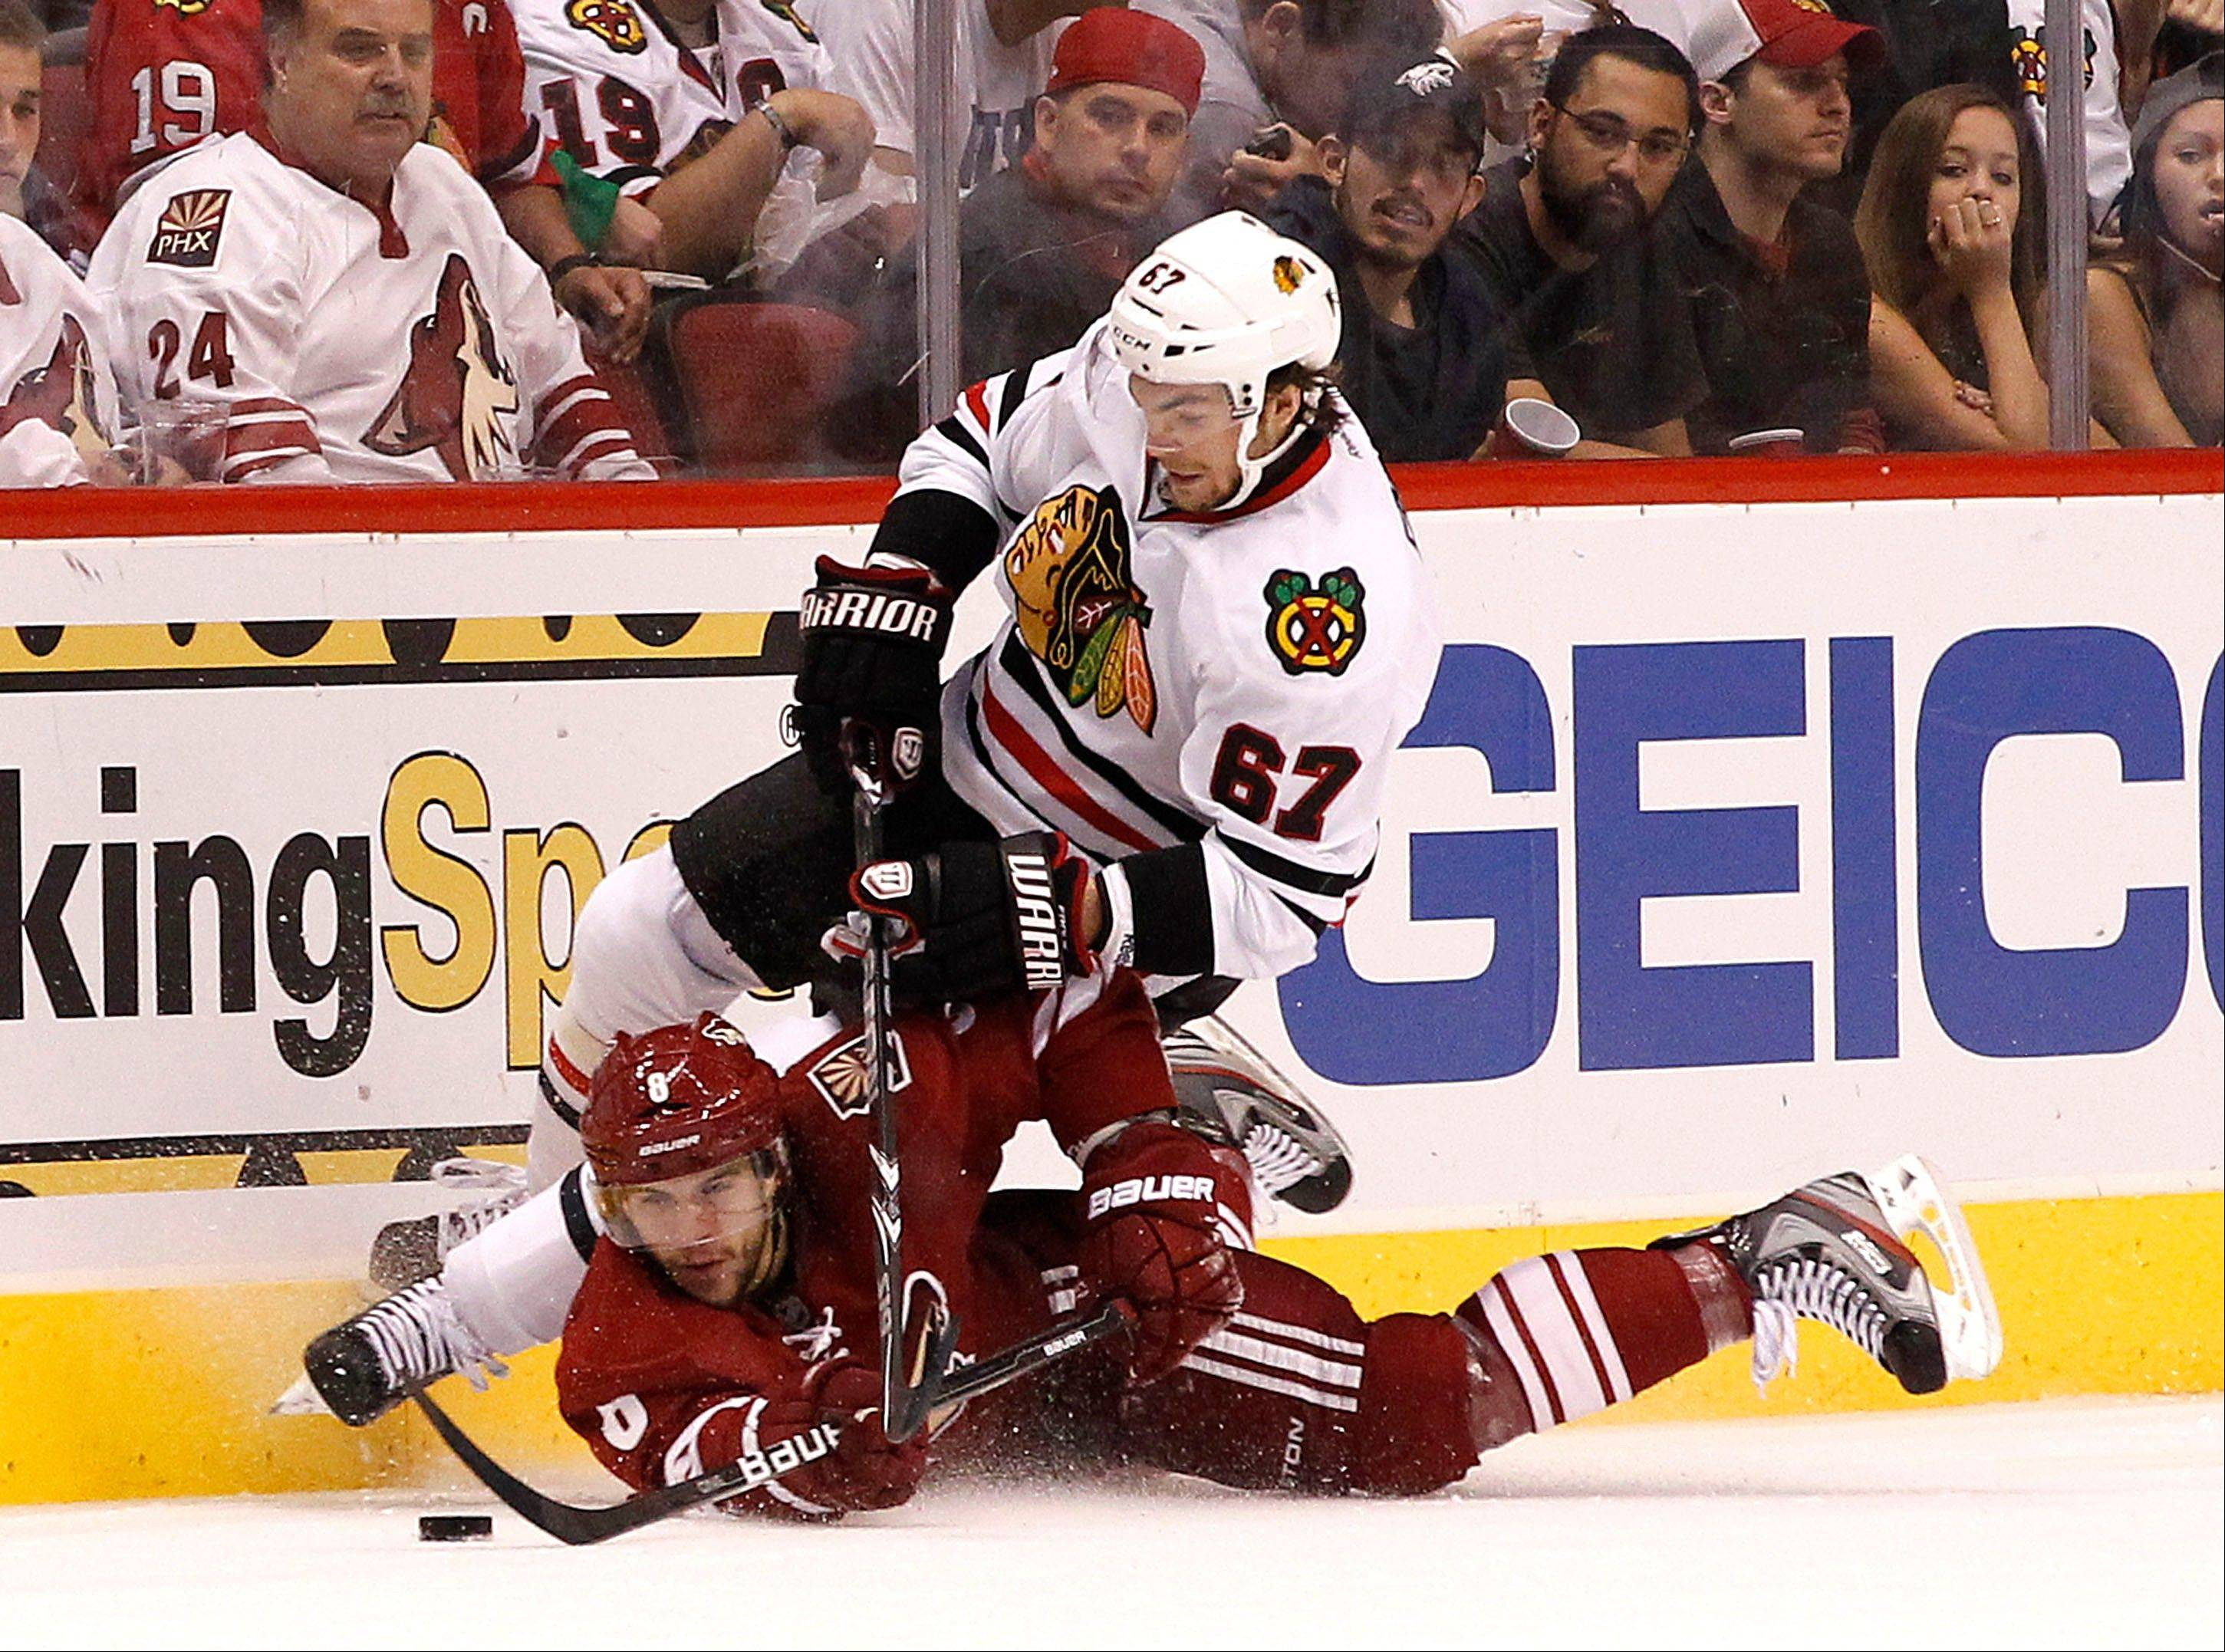 Phoenix Coyotes' Gilbert Brule (8) tries to get control of the puck as Chicago Blackhawks' Michael Frolik (67), of the Czech Republic, falls over him during the second period in Game 5 of an NHL hockey Stanley Cup first-round playoff series Saturday, April 21, 2012, in Glendale, Ariz.